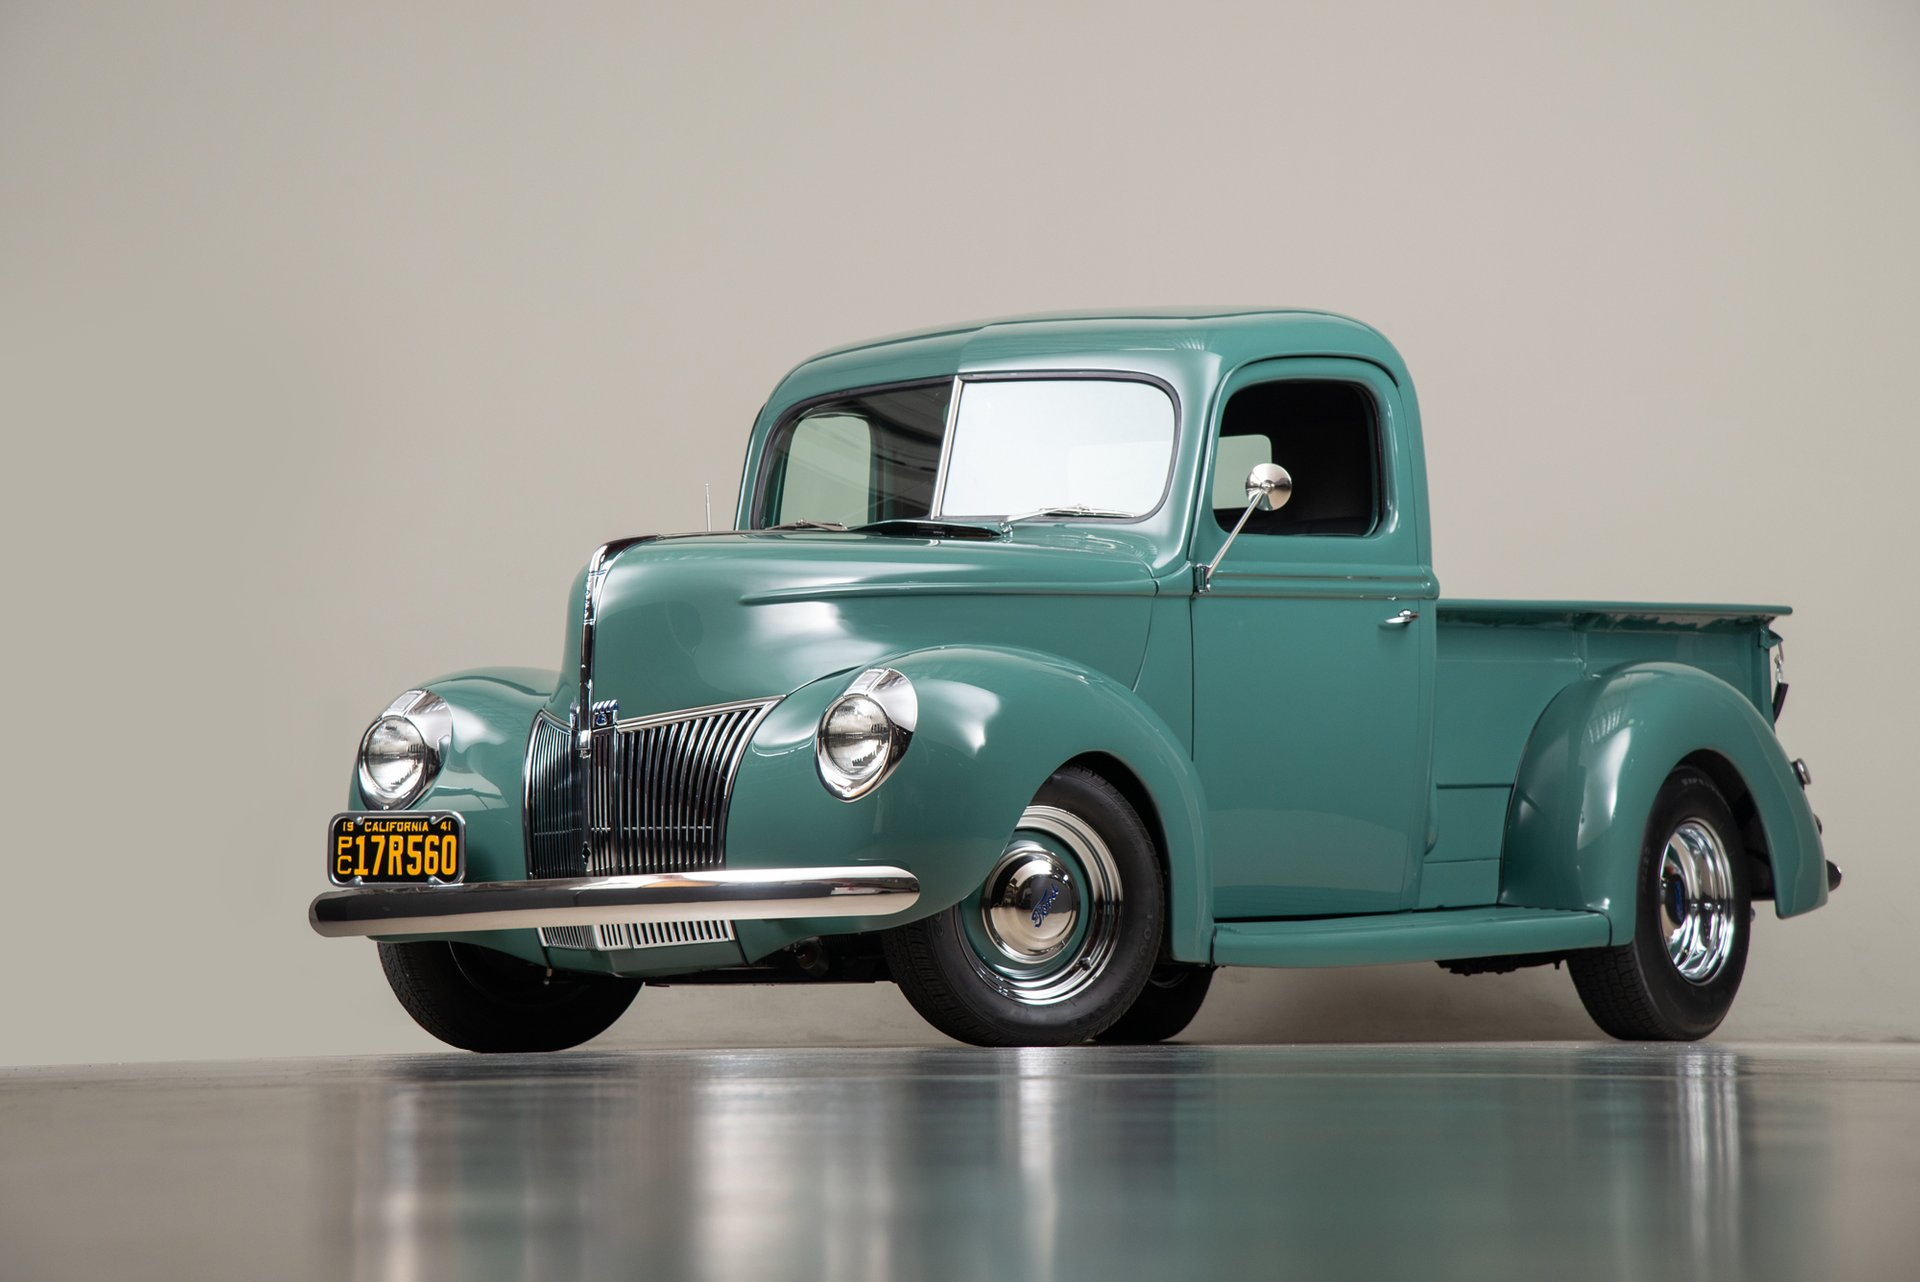 1941 Ford Pickup For Sale 108251 Mcg Vin Location